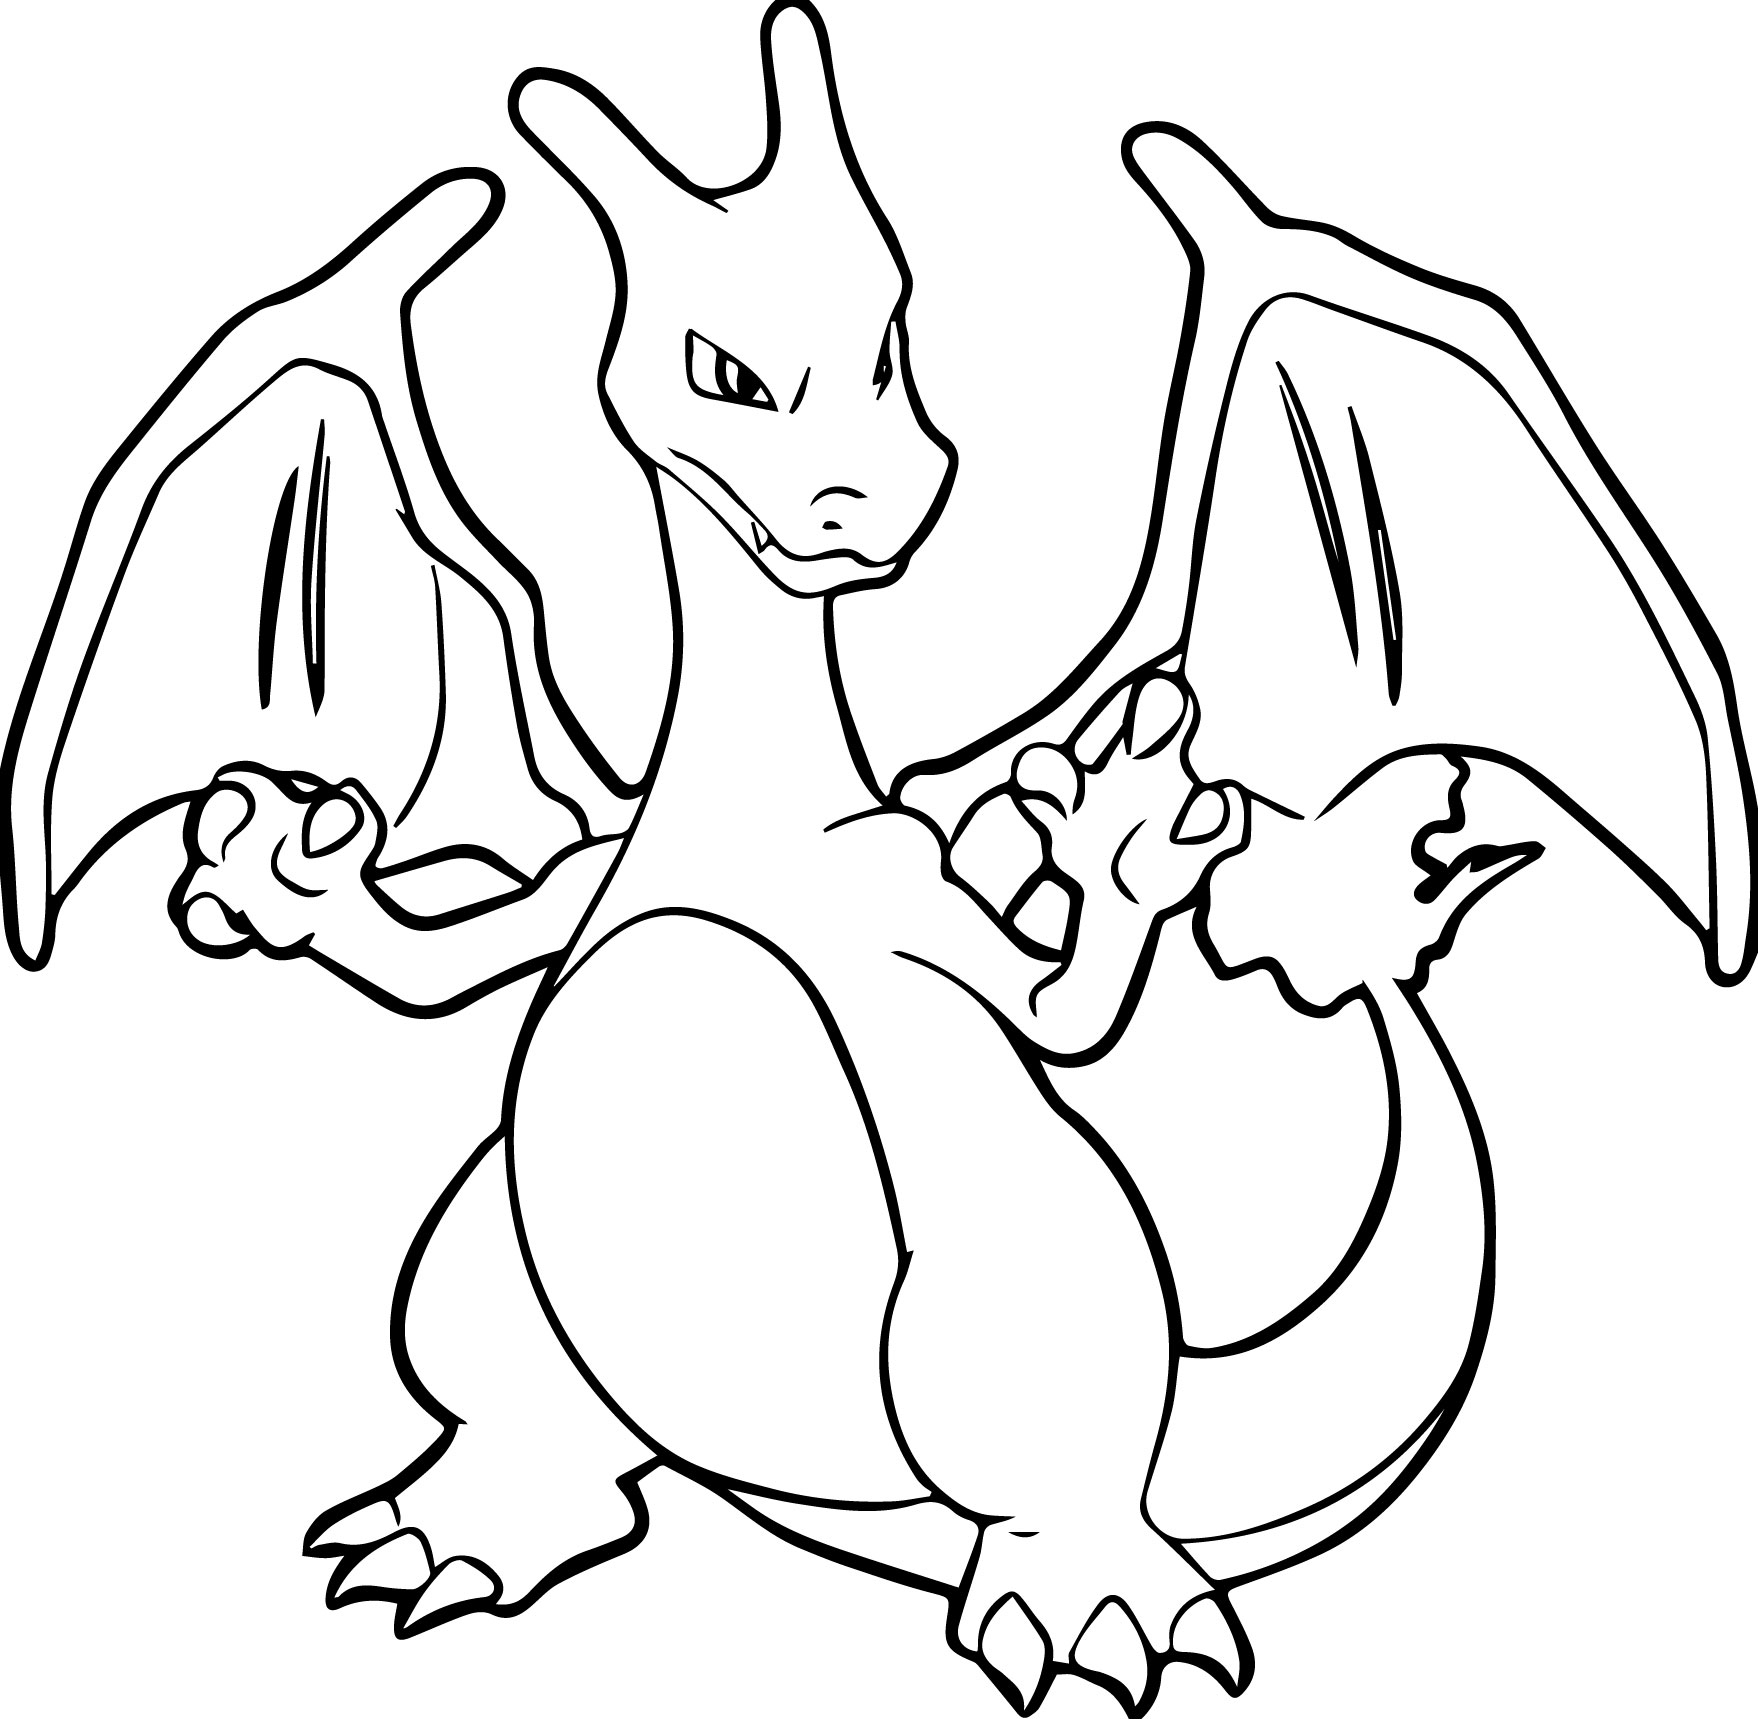 Coloring Pages Pokemon Charmander at GetDrawings | Free ...